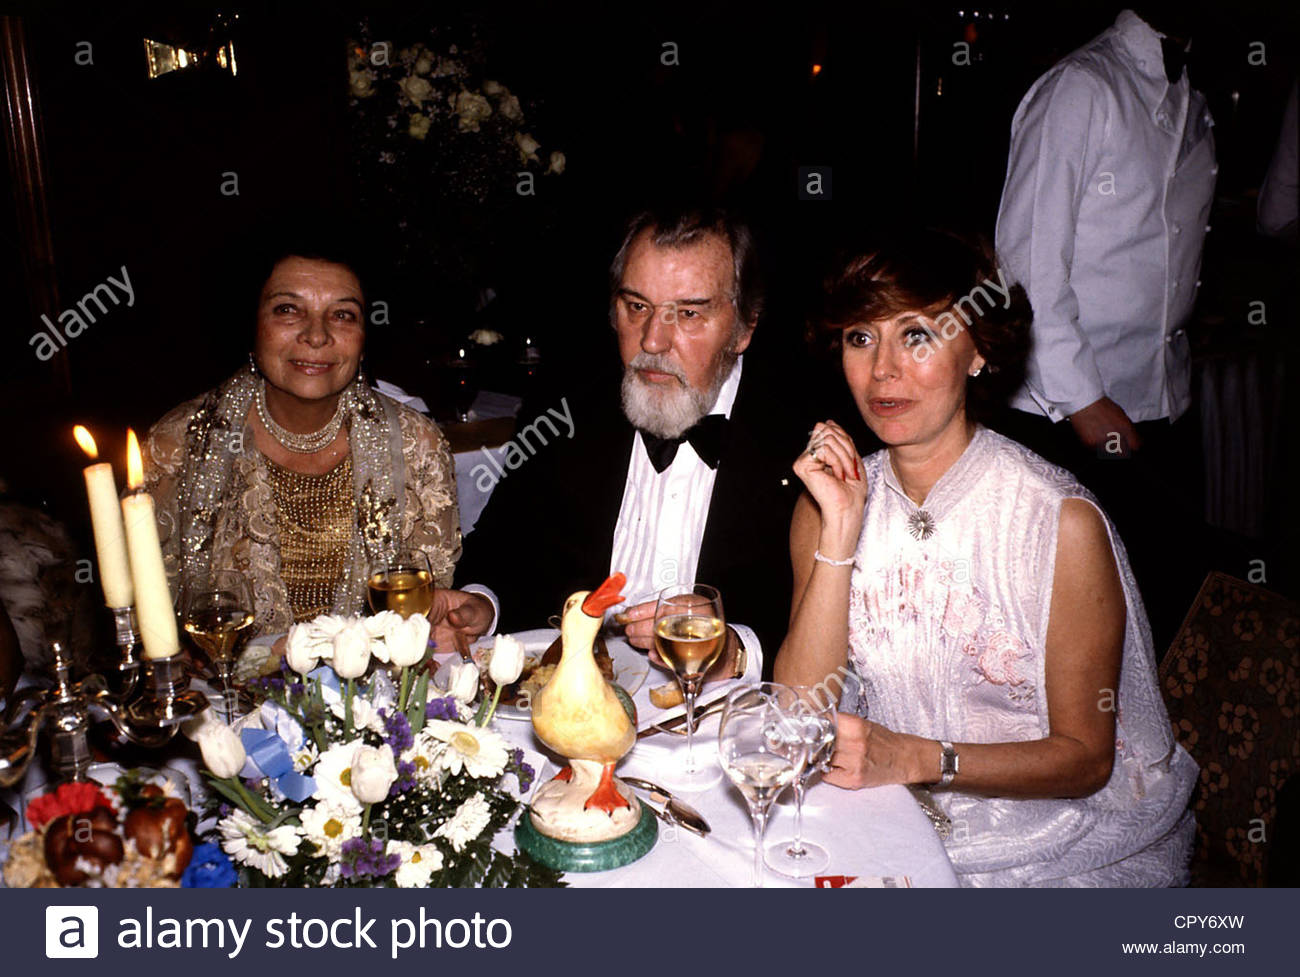 Wicki, Bernhard, 28.10.1919 - 5.1.2000, Swiss actor / director, group picture, with his wife Agnes Fink and Caterina - Stock Image